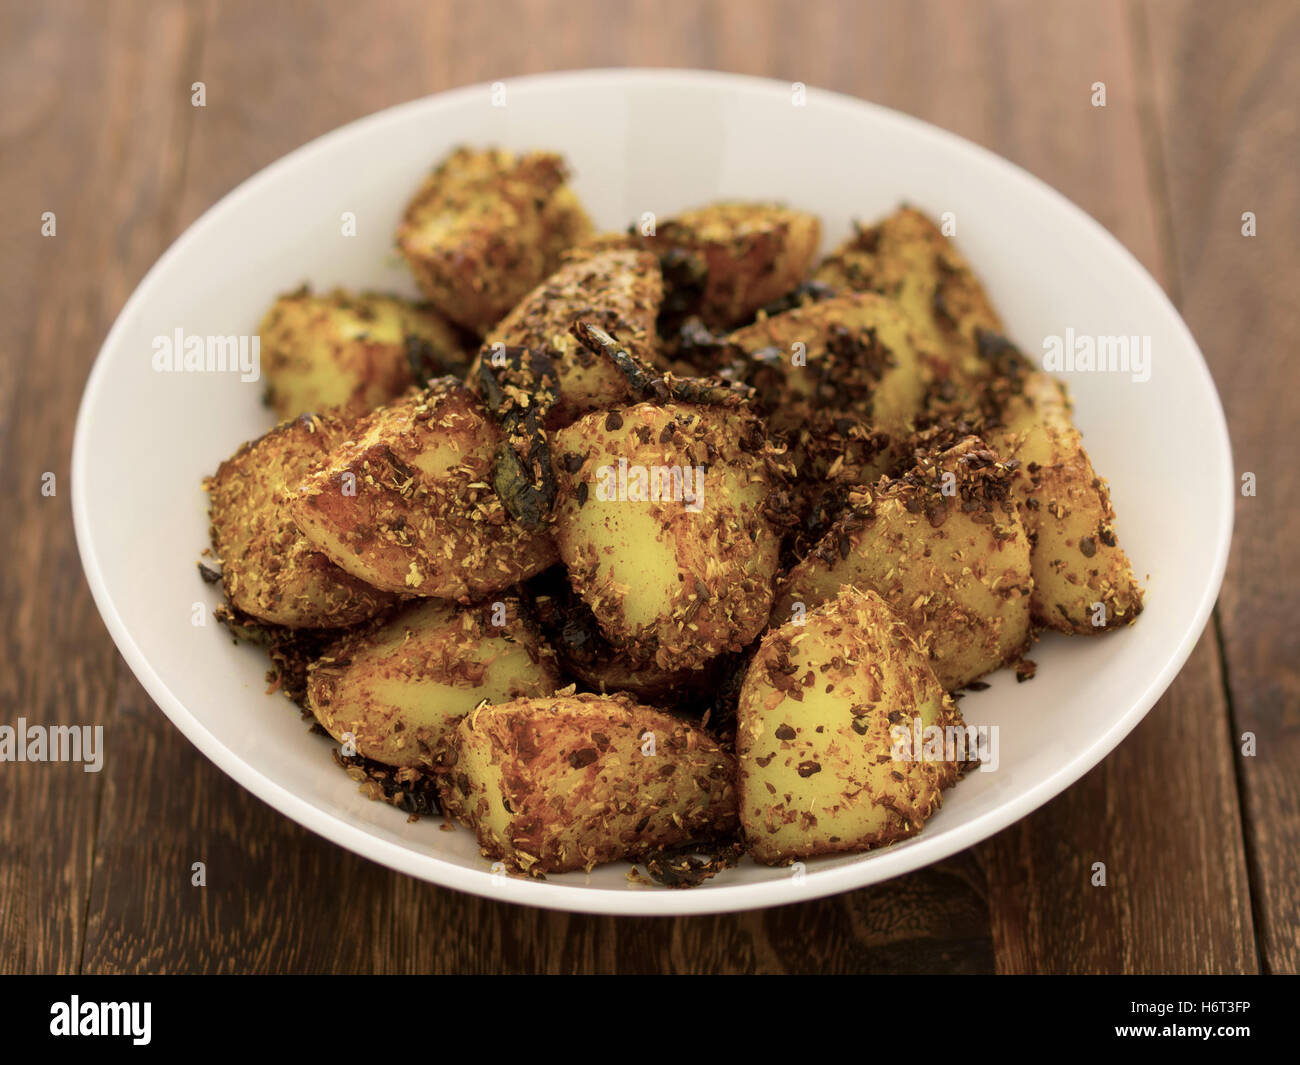 vegetable spices potatoes carbohydrates baked indian roasted parched food aliment spice colour closeup horizontal - Stock Image